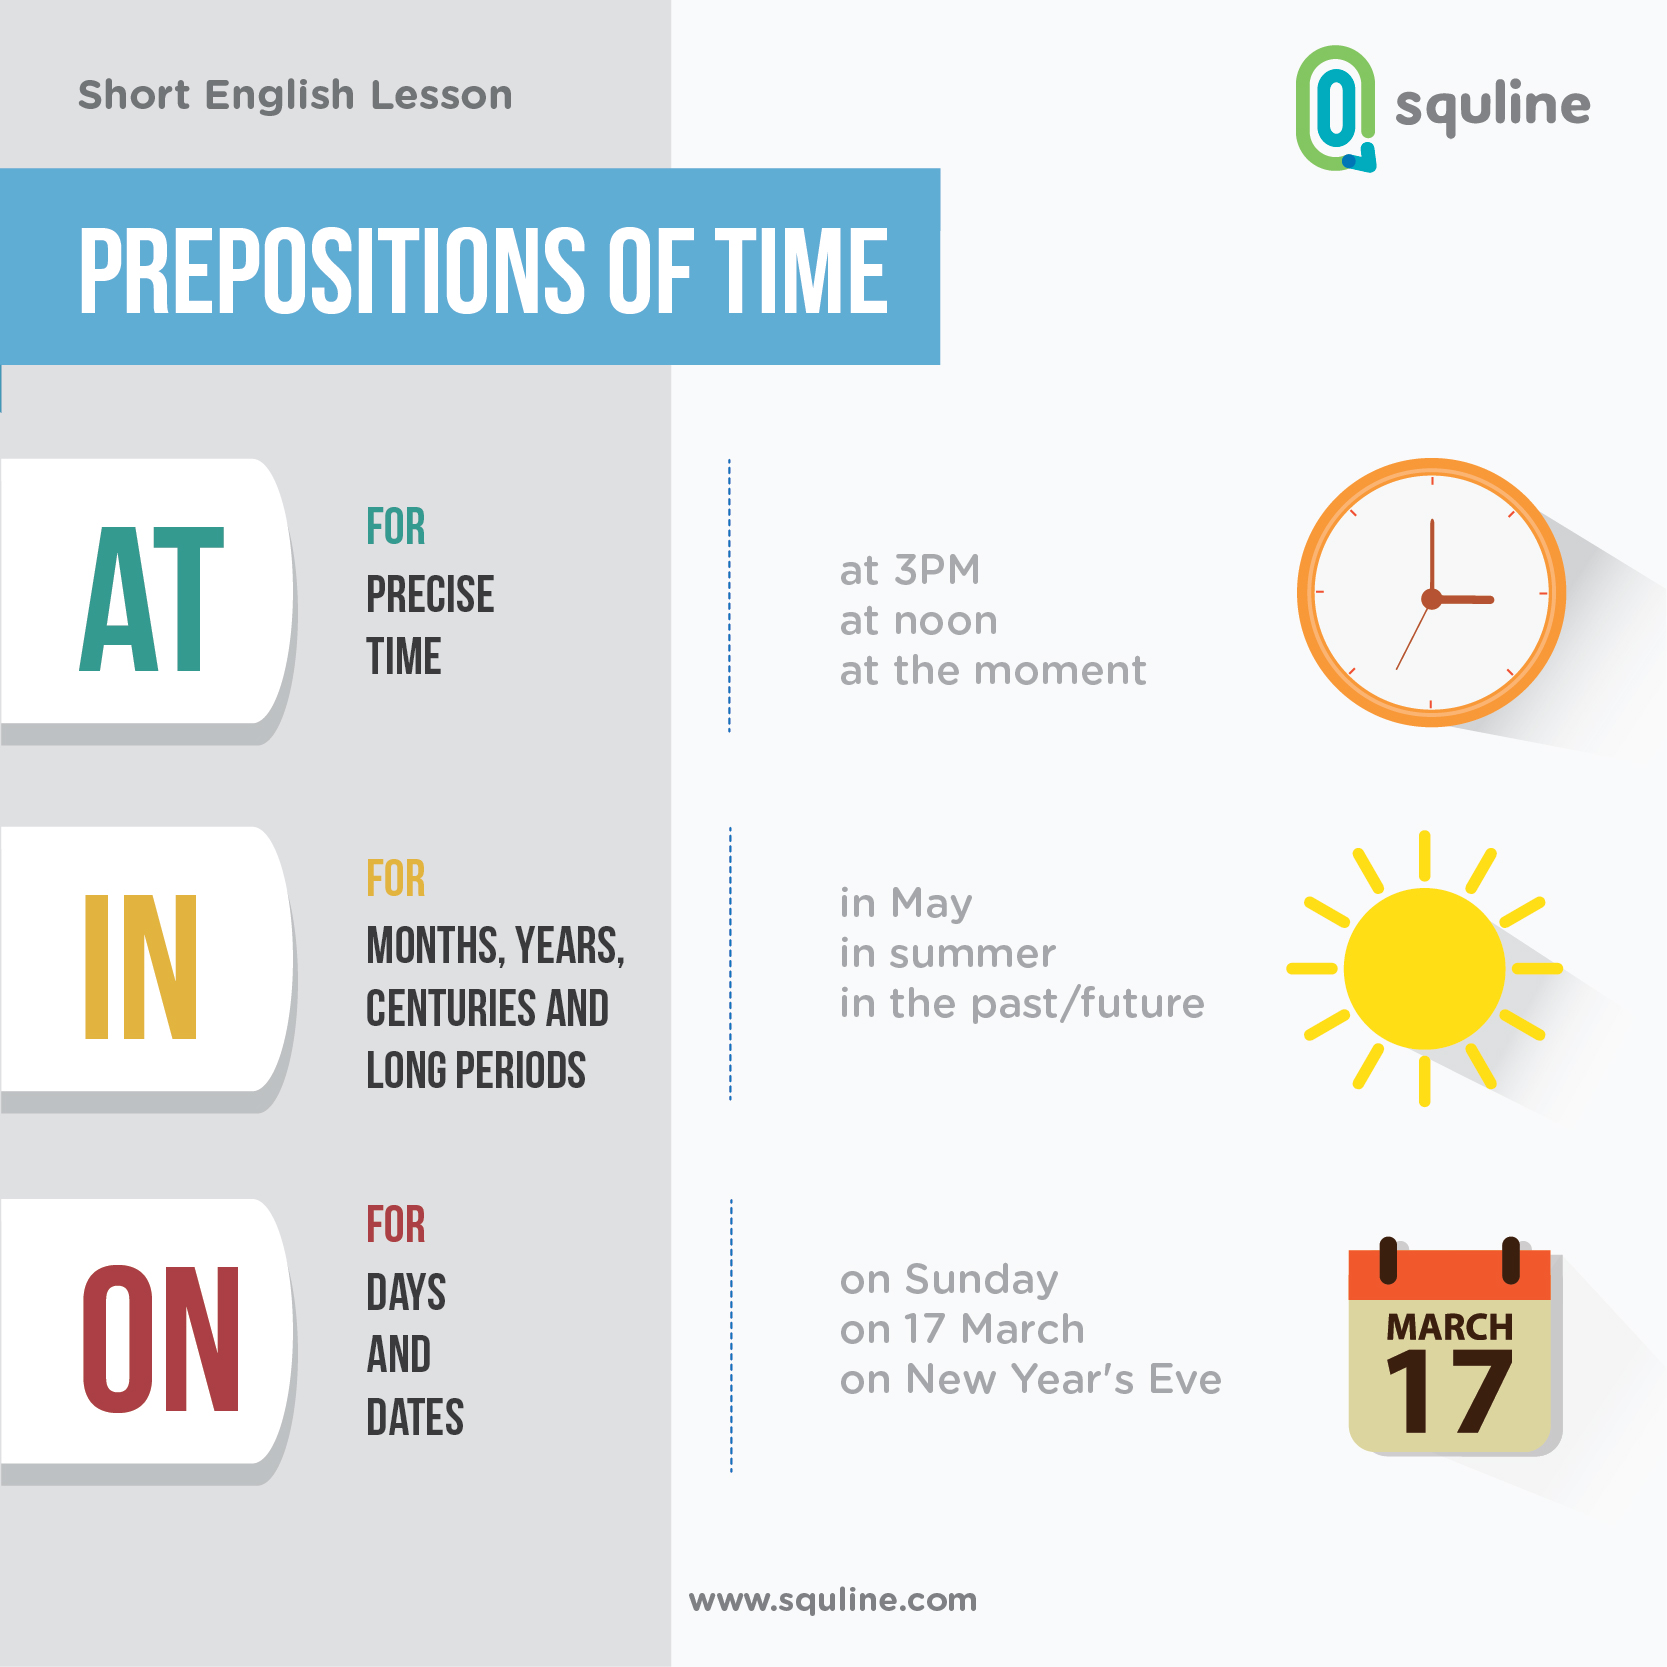 English Short Lesson Prepositions Of Time